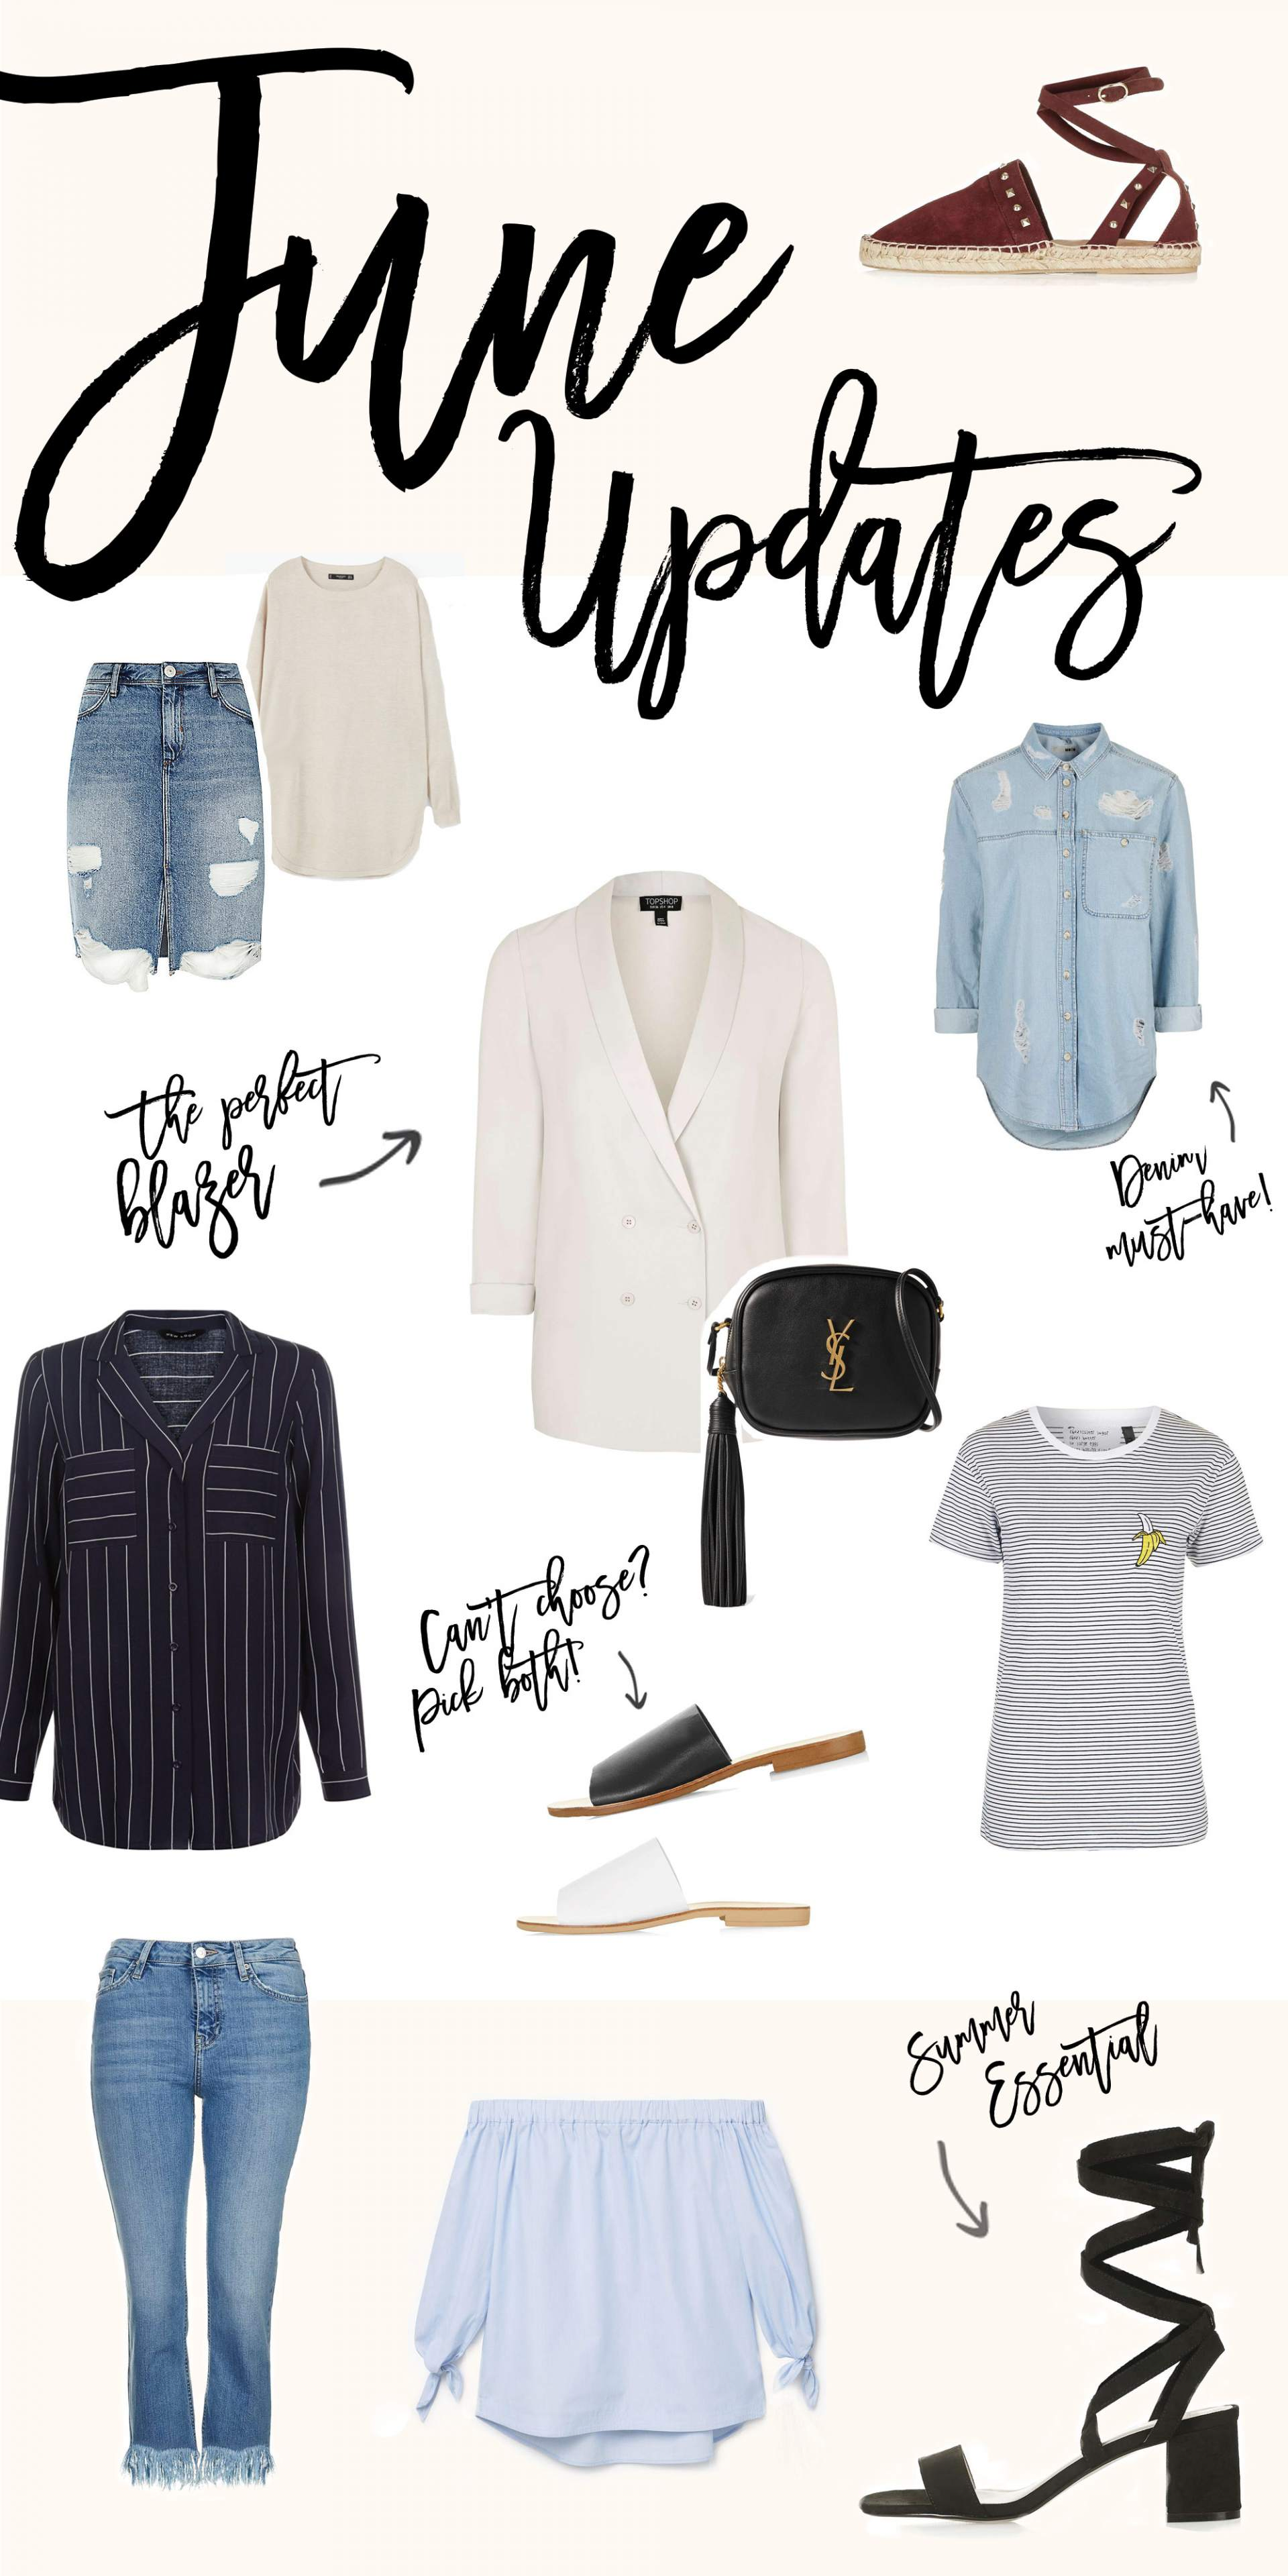 june-wishlist-high-street-topshop-spring-picks